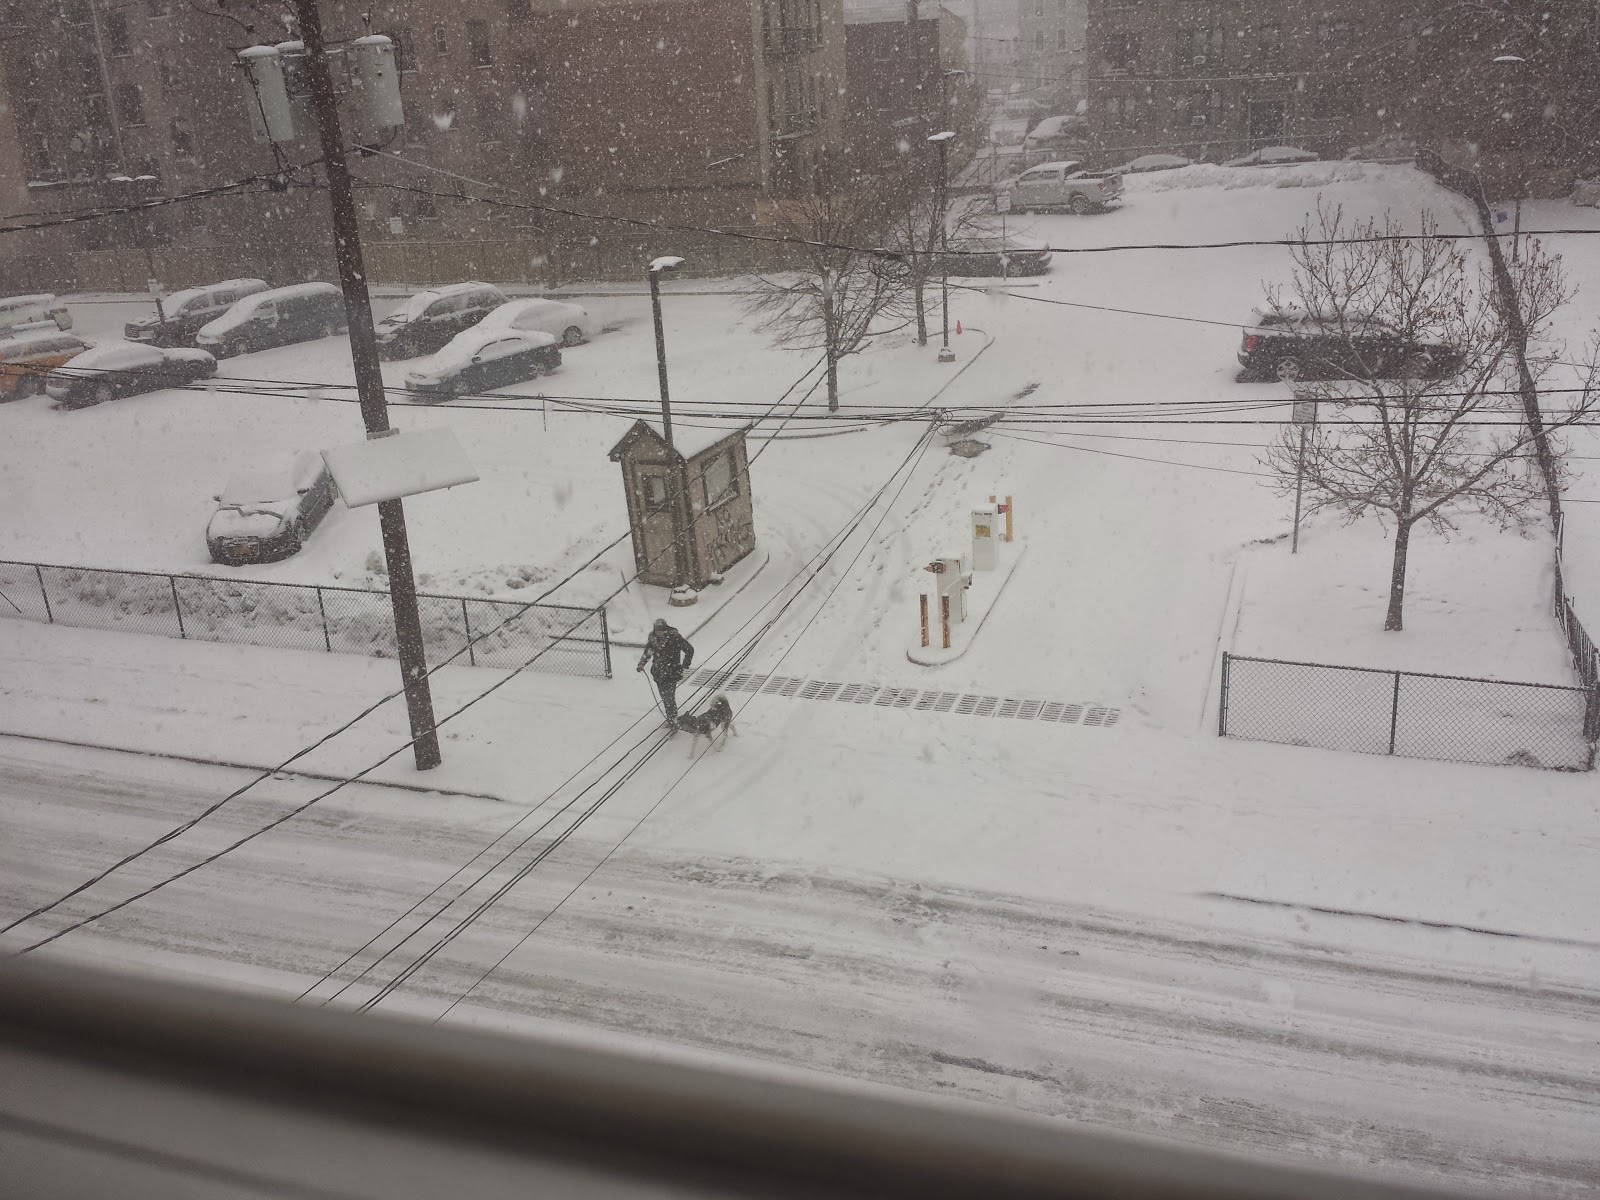 Snowing in Jersey City